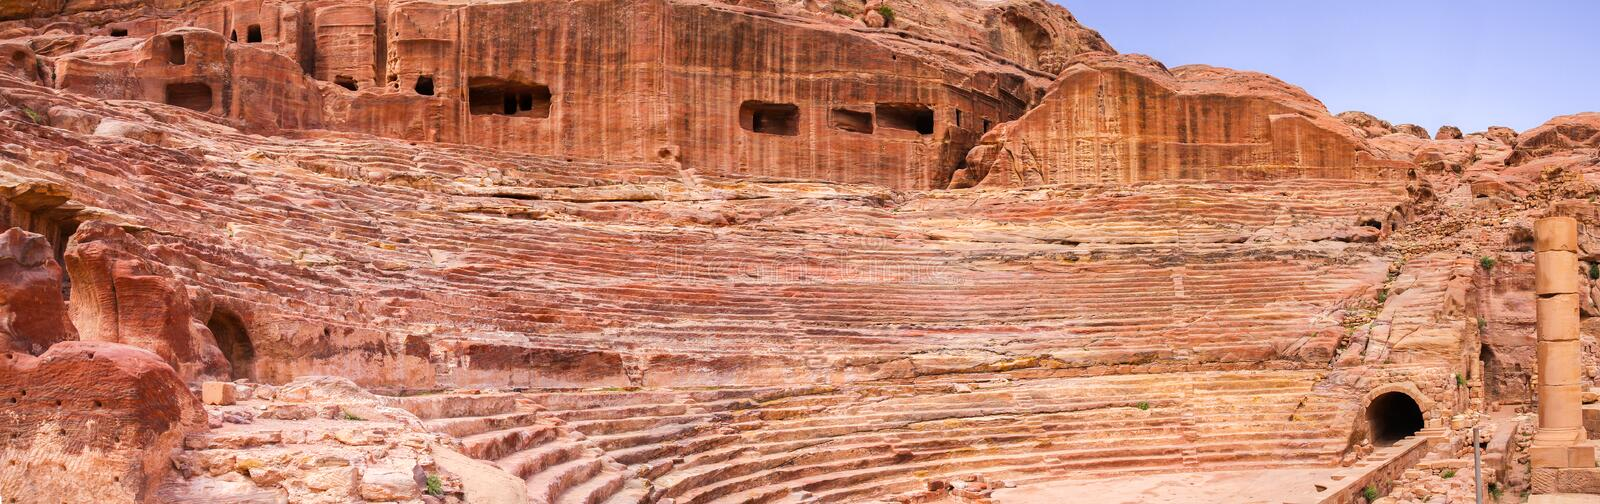 Ancient amphitheater in panorama view, Petra, Jordan stock photo